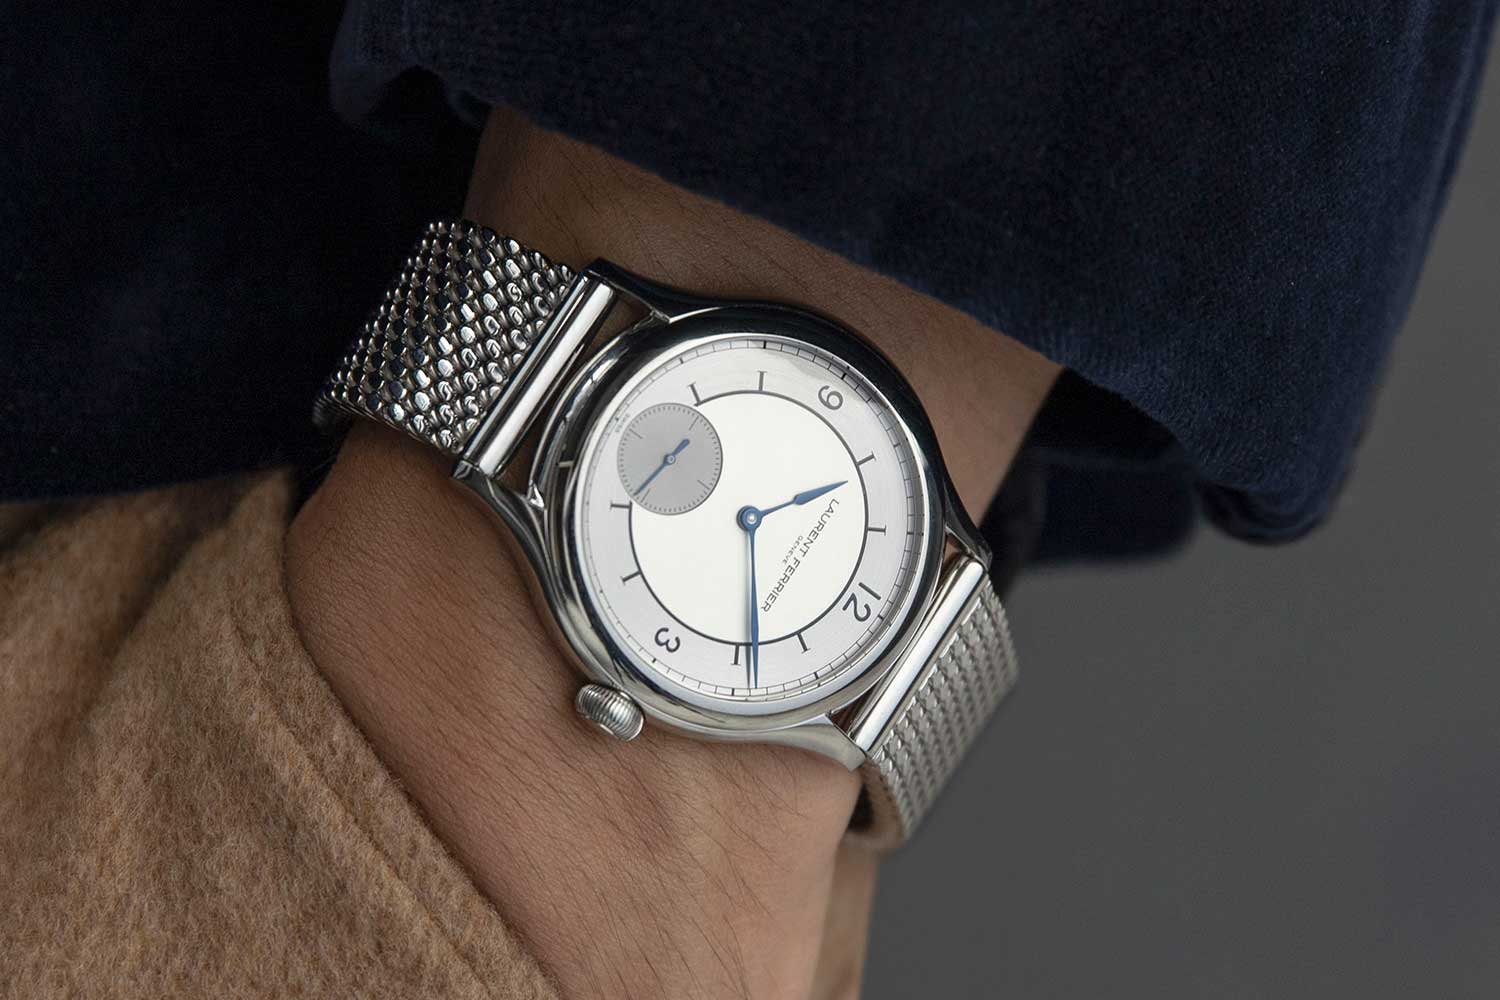 On the wrist: Laurent Ferrier Classic Origin for Revolution & The Rake on the steel beads of rice bracelet (©Revolution)